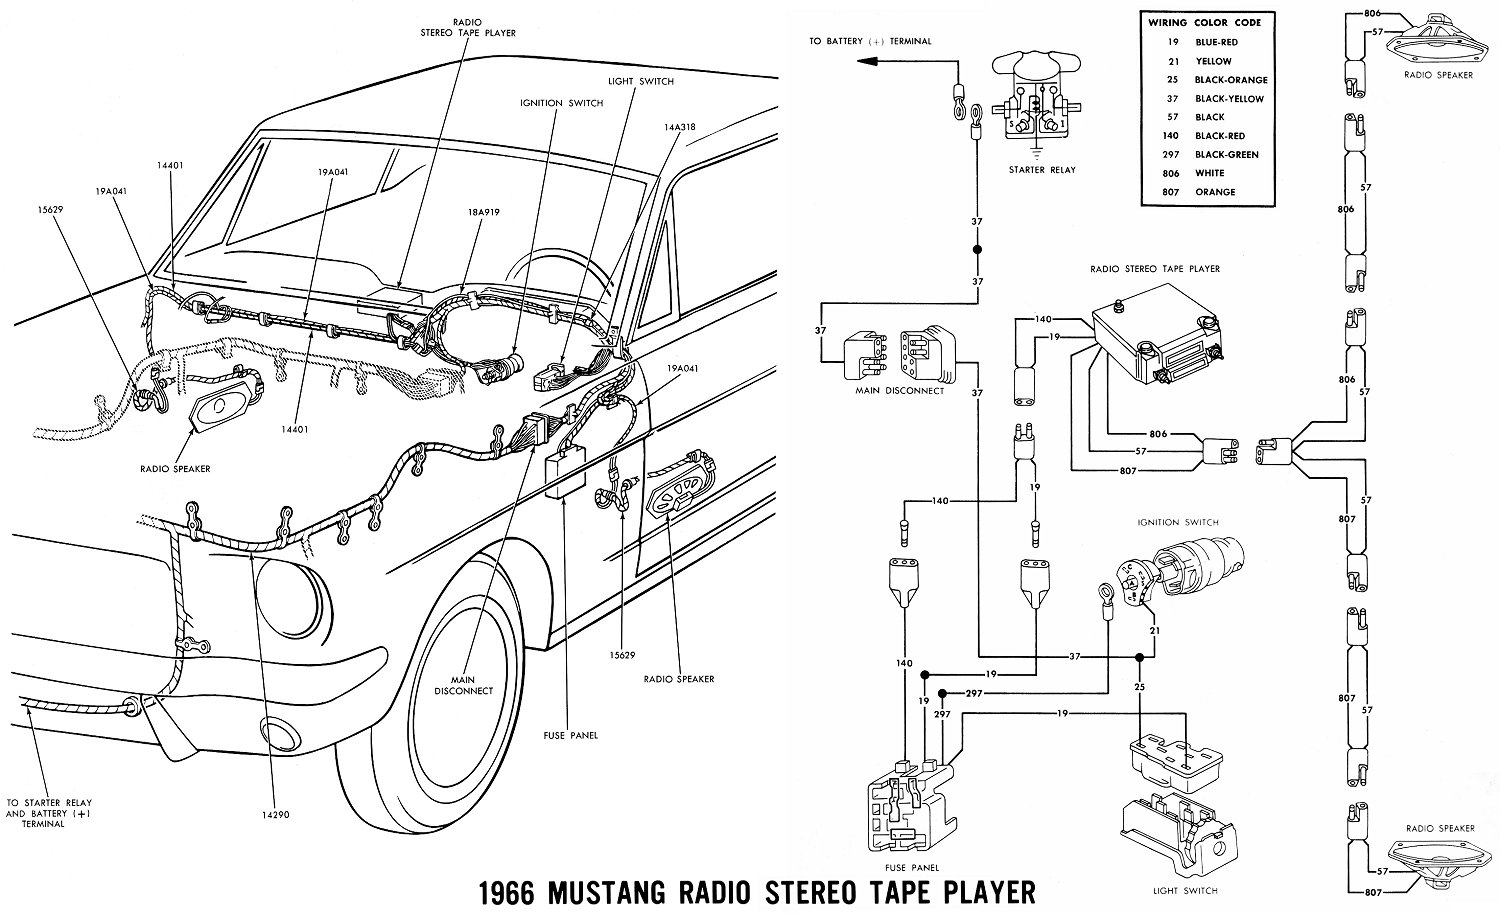 L Series Truck furthermore Fuel Injector Wiring Harness Diagram For 86 Corvette Wiring Diagrams furthermore Chevrolet Truck Exhaust Schematic additionally Wiring Diagram 73 Cuda moreover 1965 Buick Skylark Wiring Diagram. on 1965 buick riviera wiring diagram